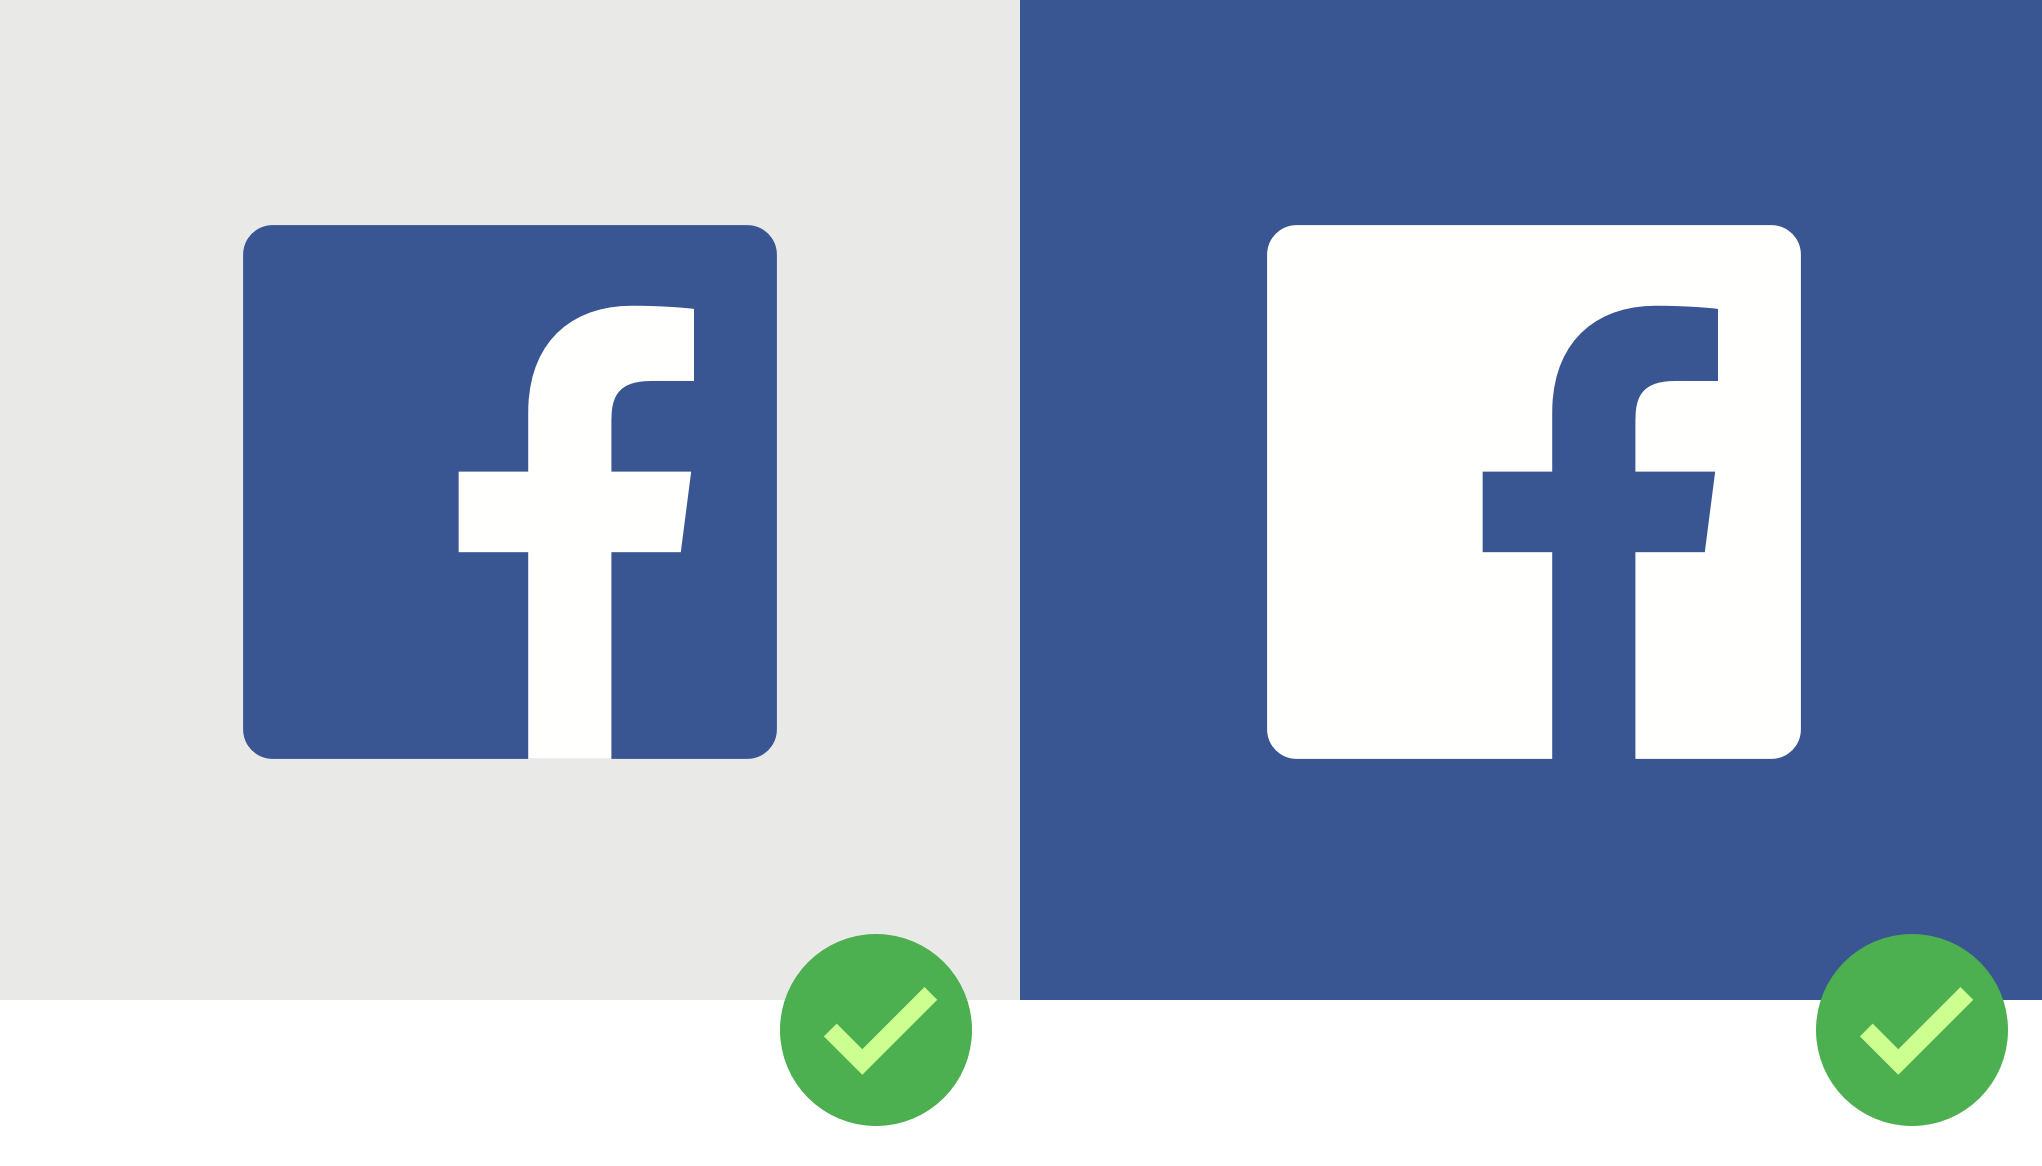 Facebook Logo Vector Ai At Getdrawings Com Free For Personal Use